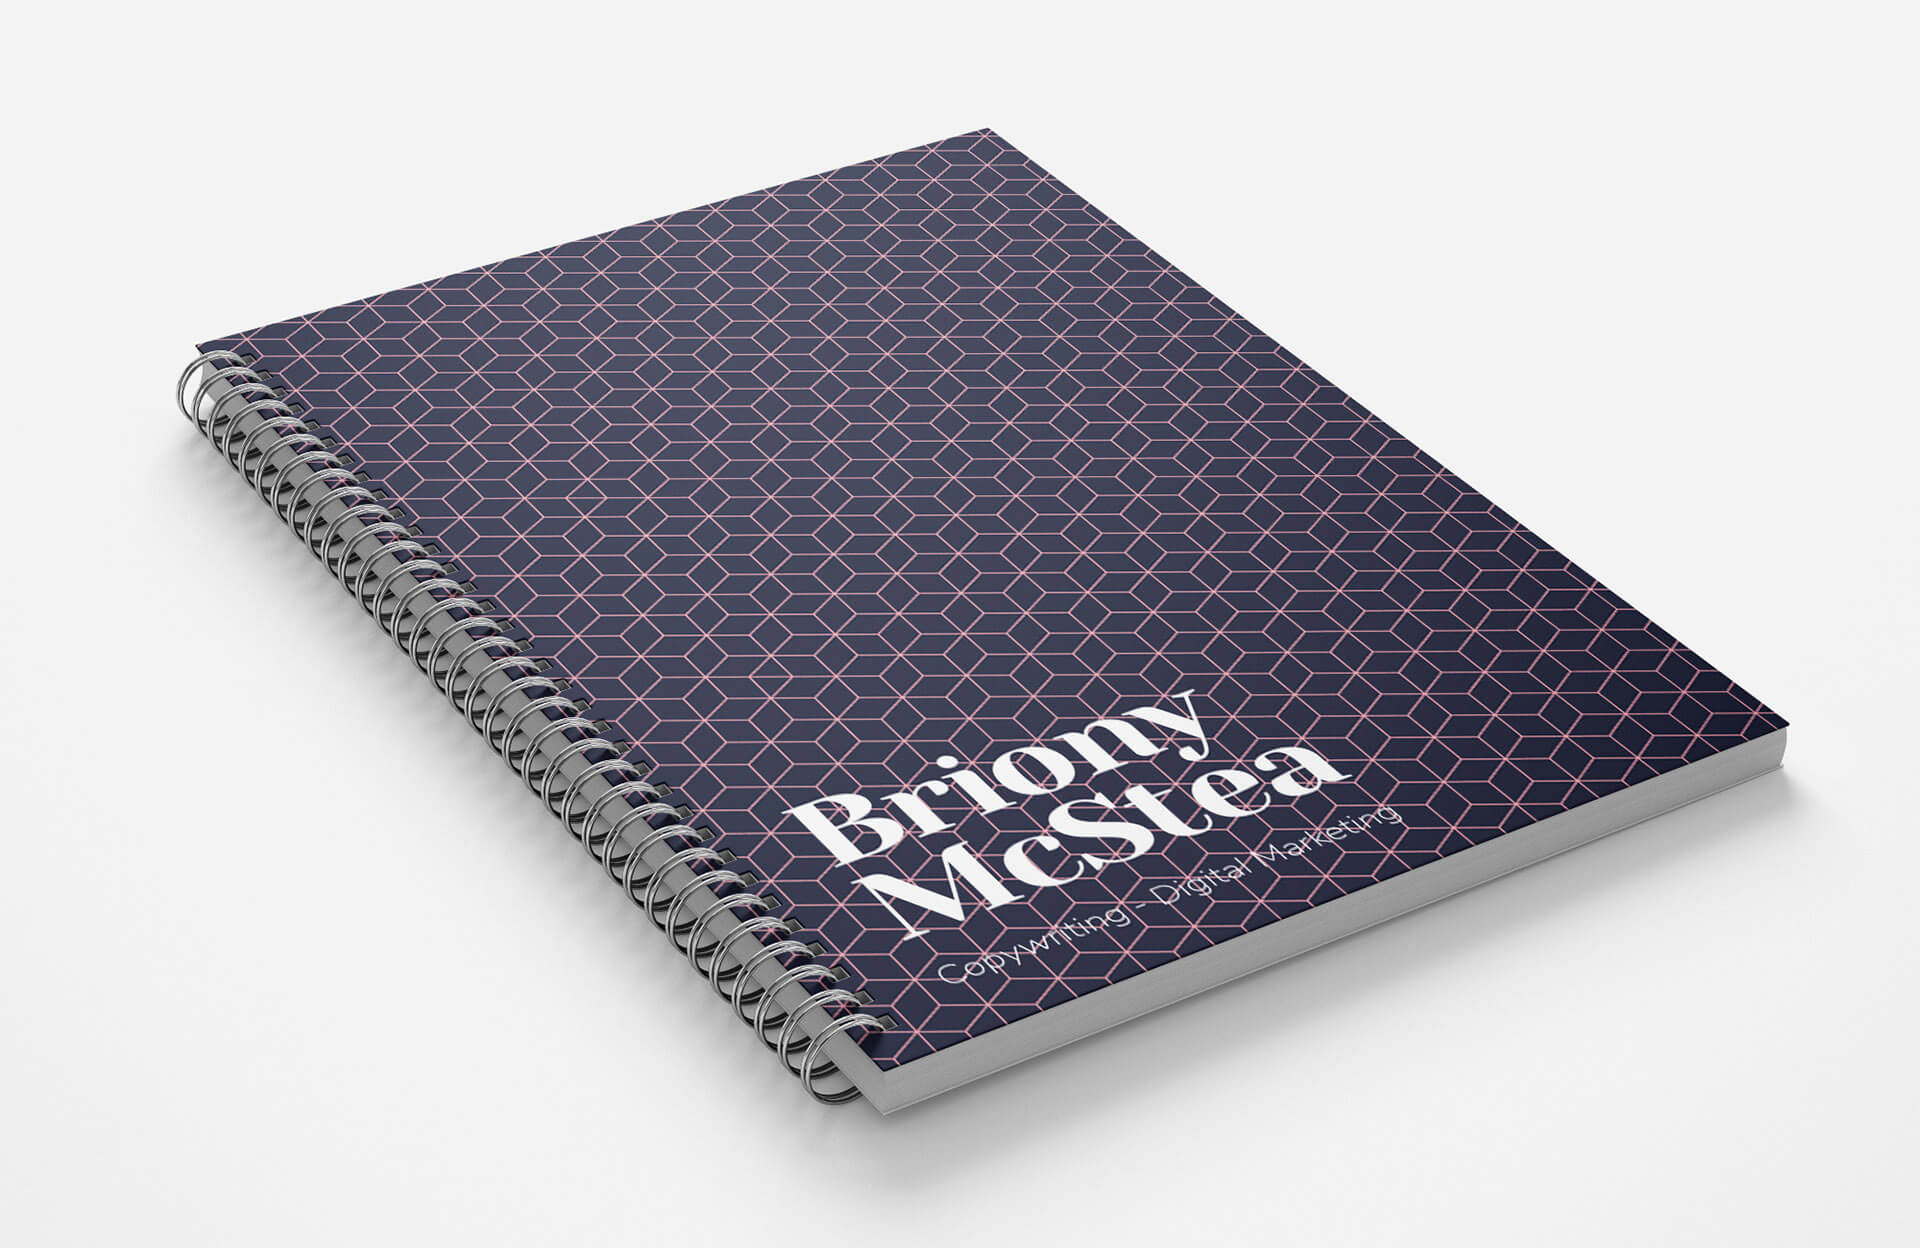 Briony McStea Spiral Notebook Mockup - THAT Branding Company - Ethical Creative Design and Branding Agency in Newcastle Gateshead and Durham - UK.jpg